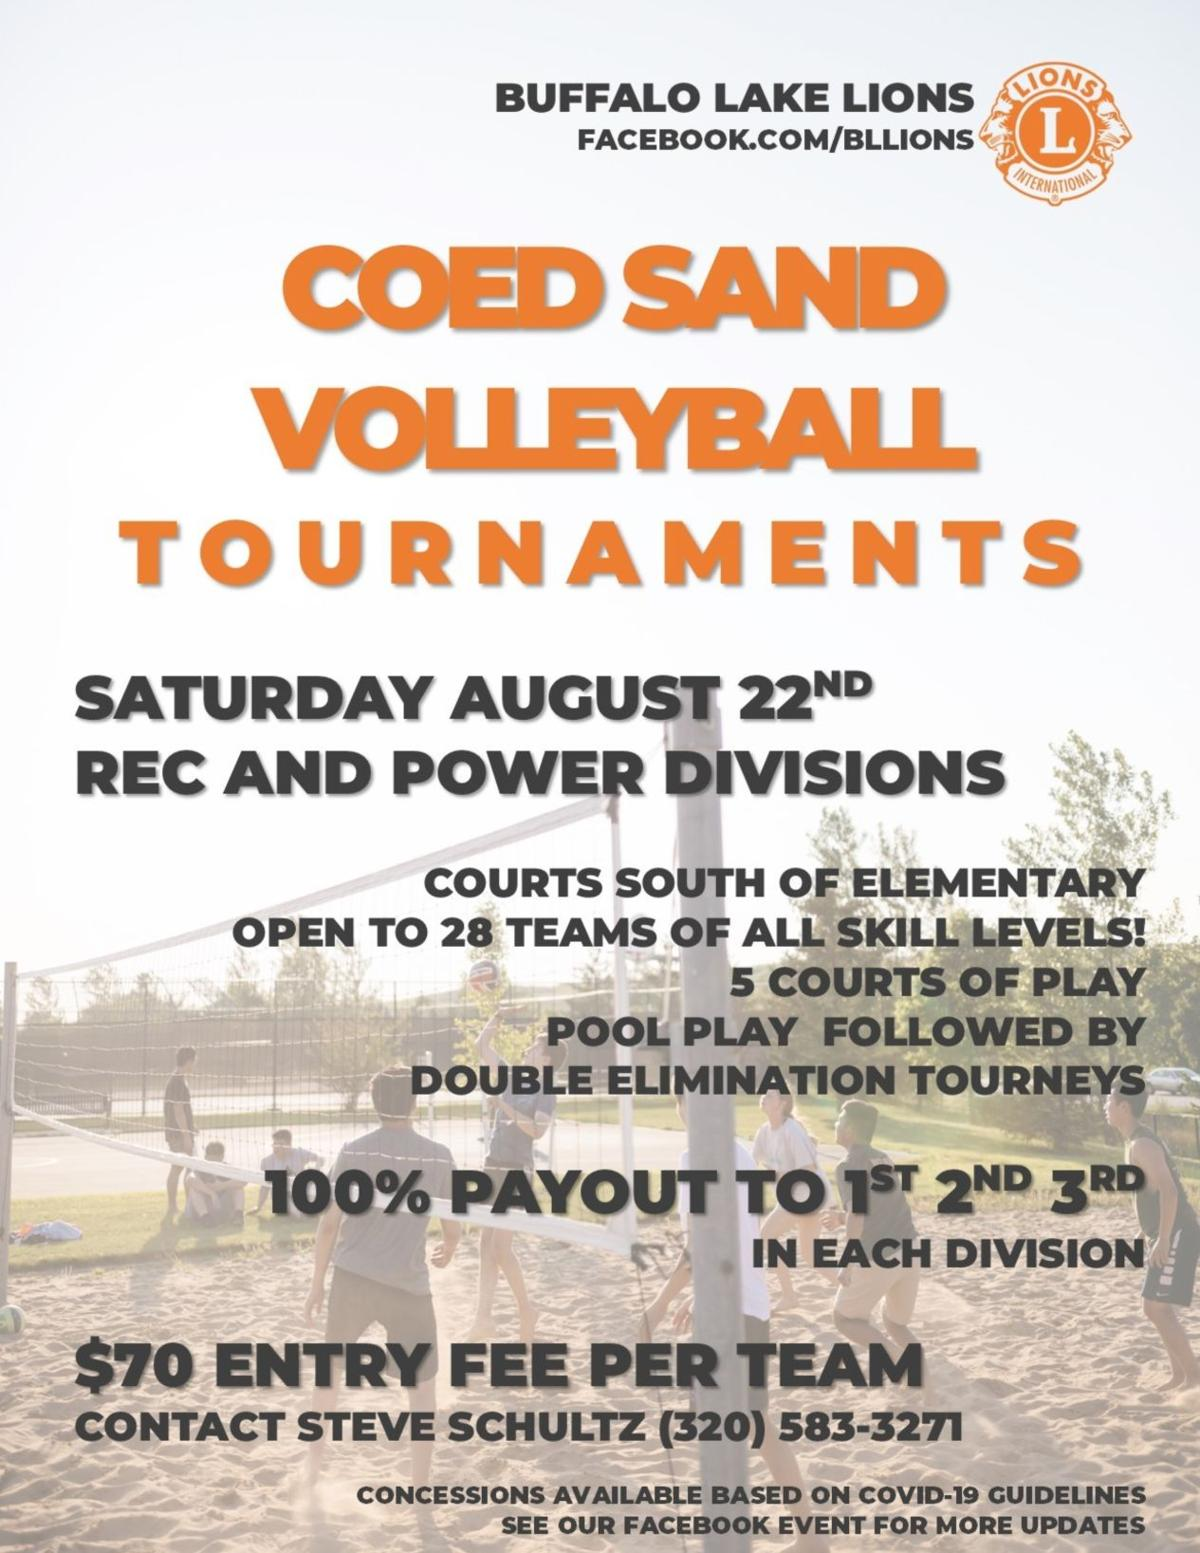 Coed Sand Volleyball Tournament